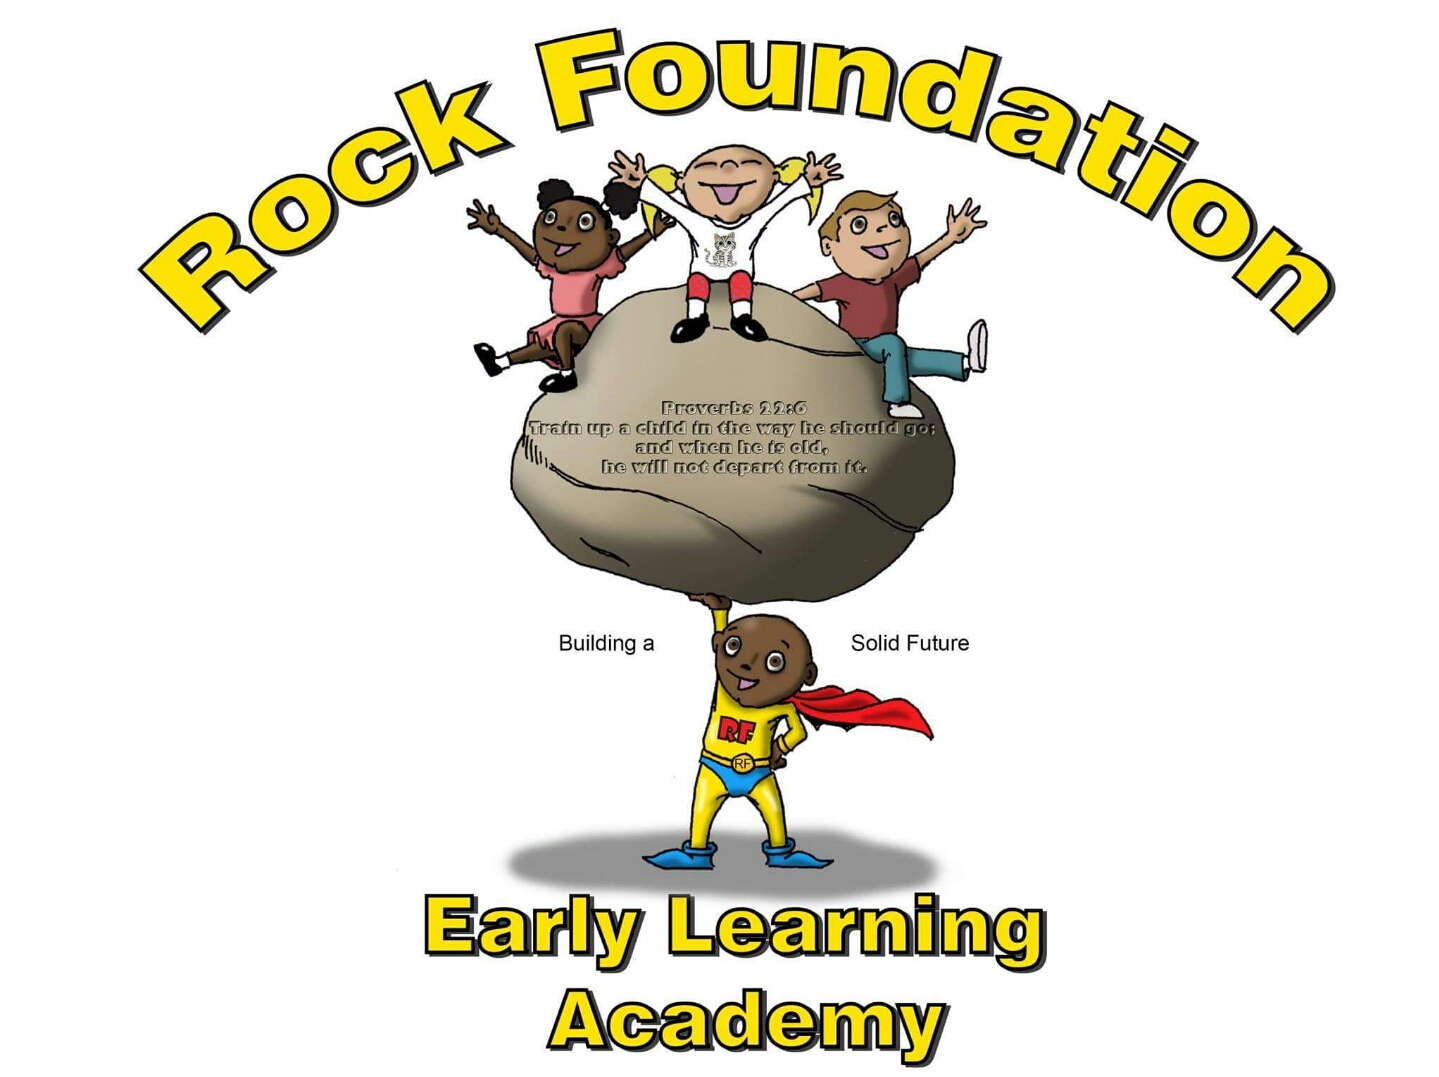 ROCK FOUNDATION EARLY LEARNING ACADEMY